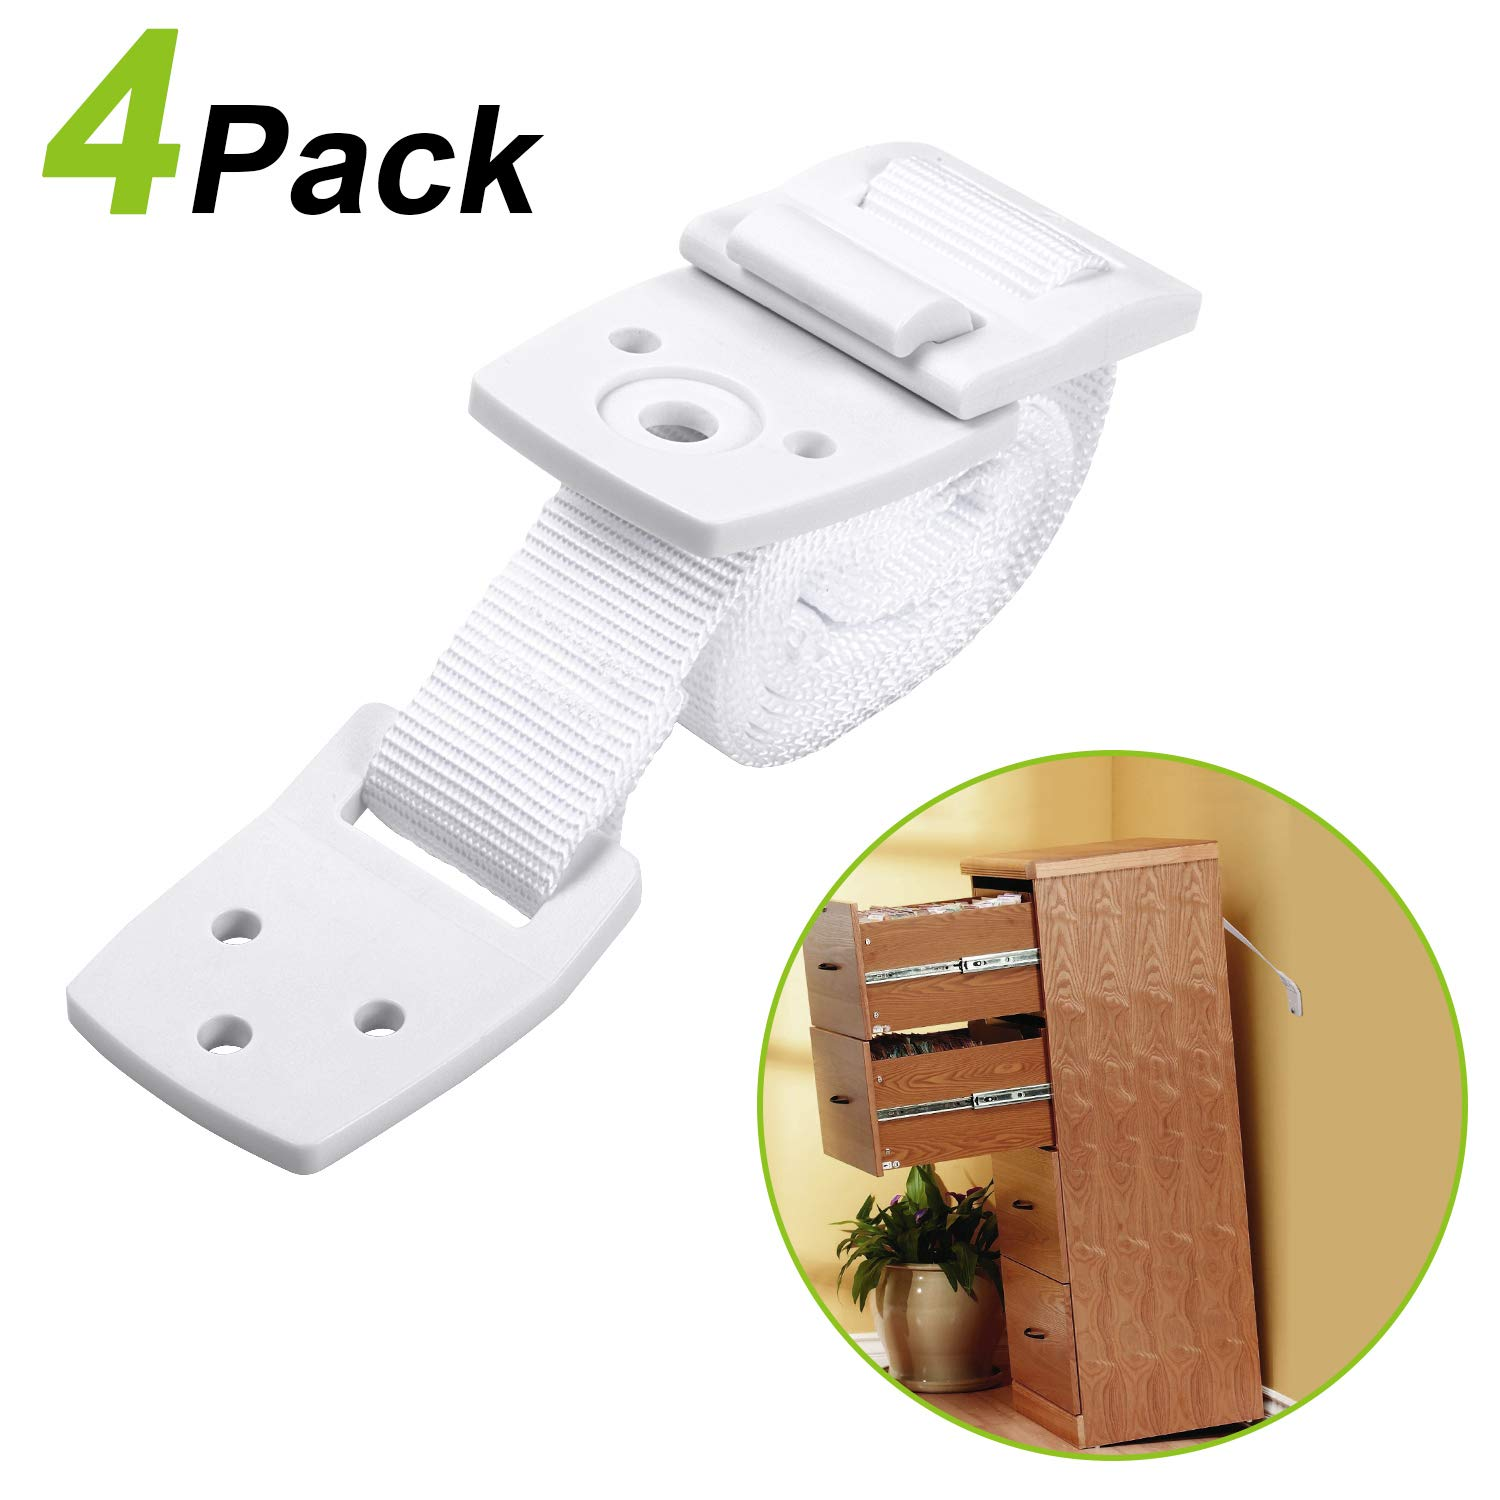 TV/Furniture Straps - Anti Tip - Adjustable Earthquake Resistant Furniture Anchors Straps Baby Proofing ¨C Attach Furniture to Wall ¨C For Dressers, Fridges, Shelves, Tv Stands